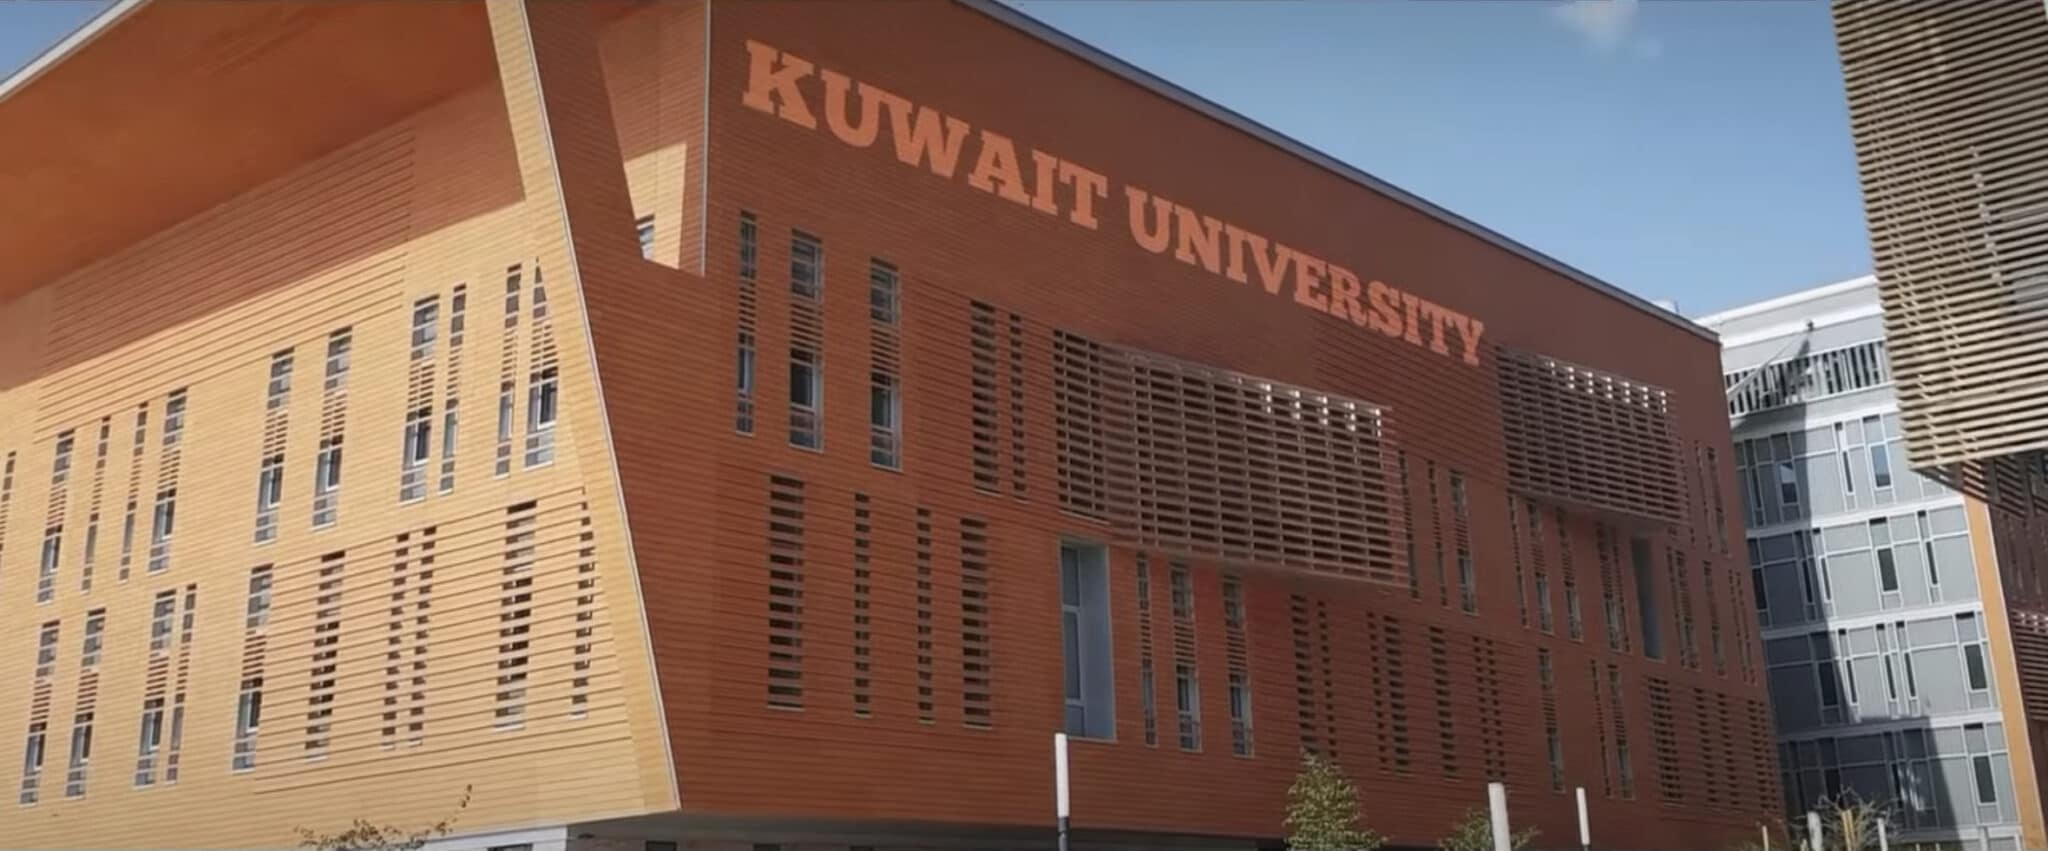 Kuwait University's College of Engineering and Petroleum adopts platform to automate review promotion processes